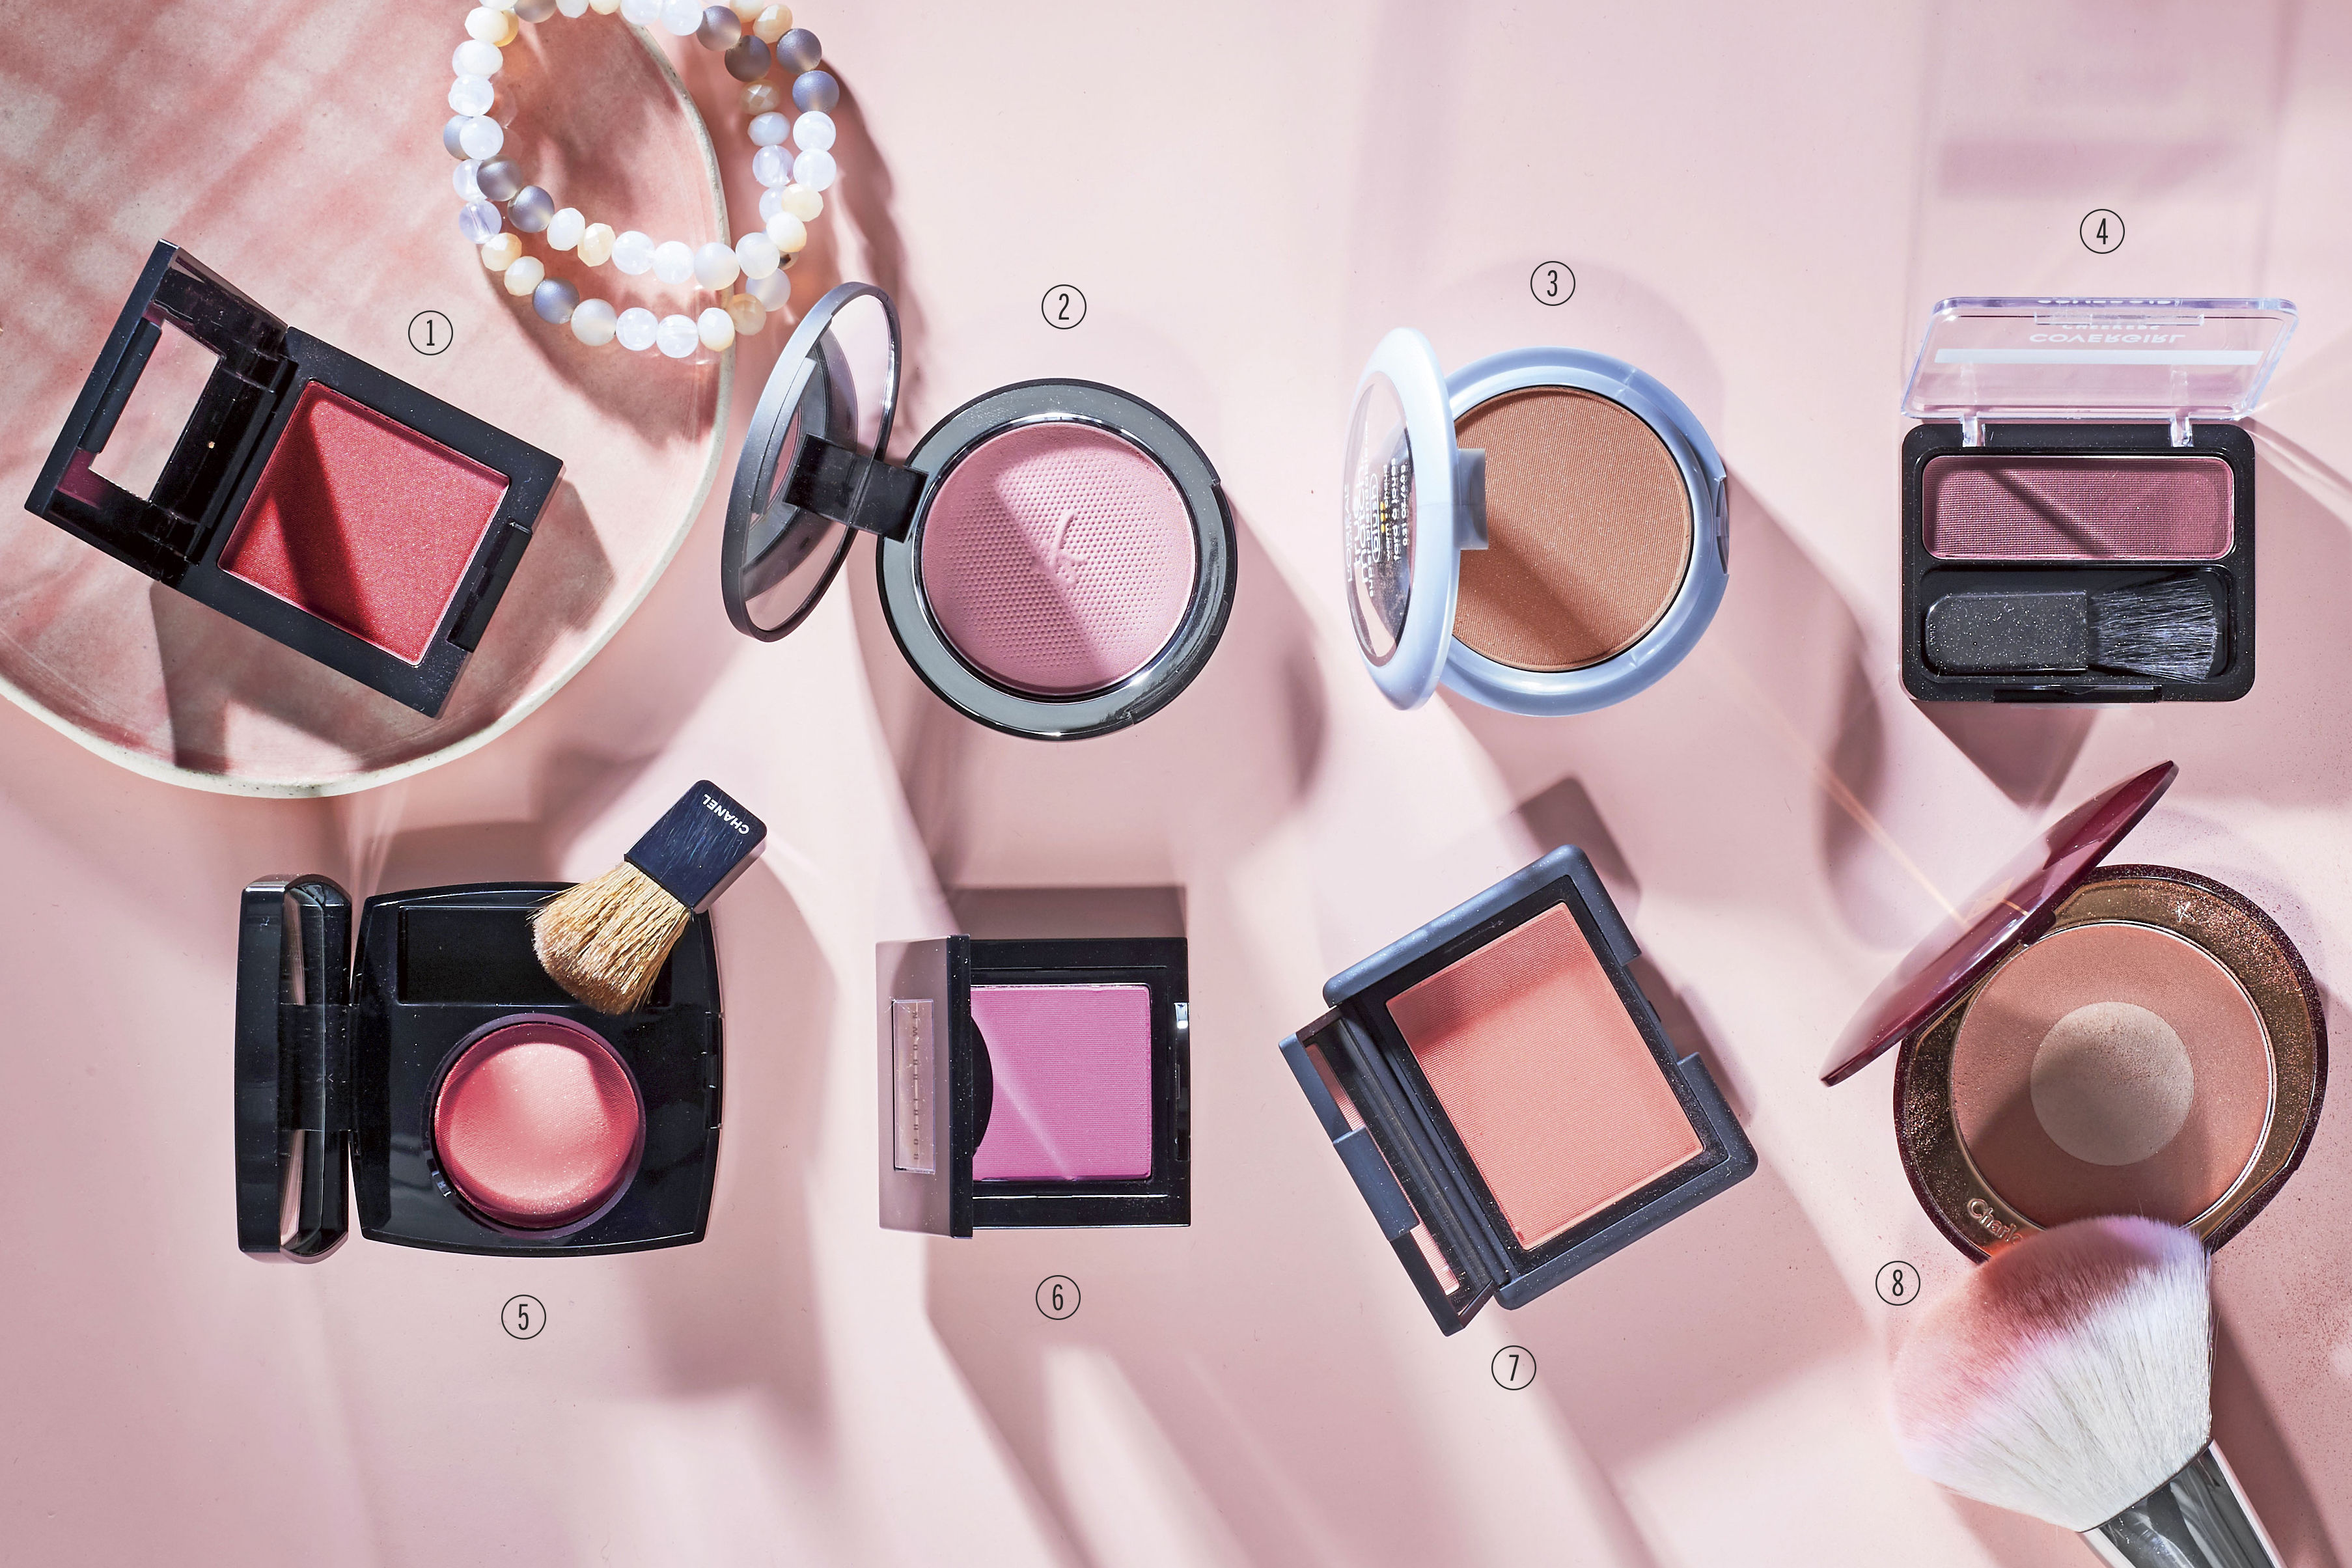 8 Blushes That Guarantee a Subtle Flush With a Flick of the Wrist